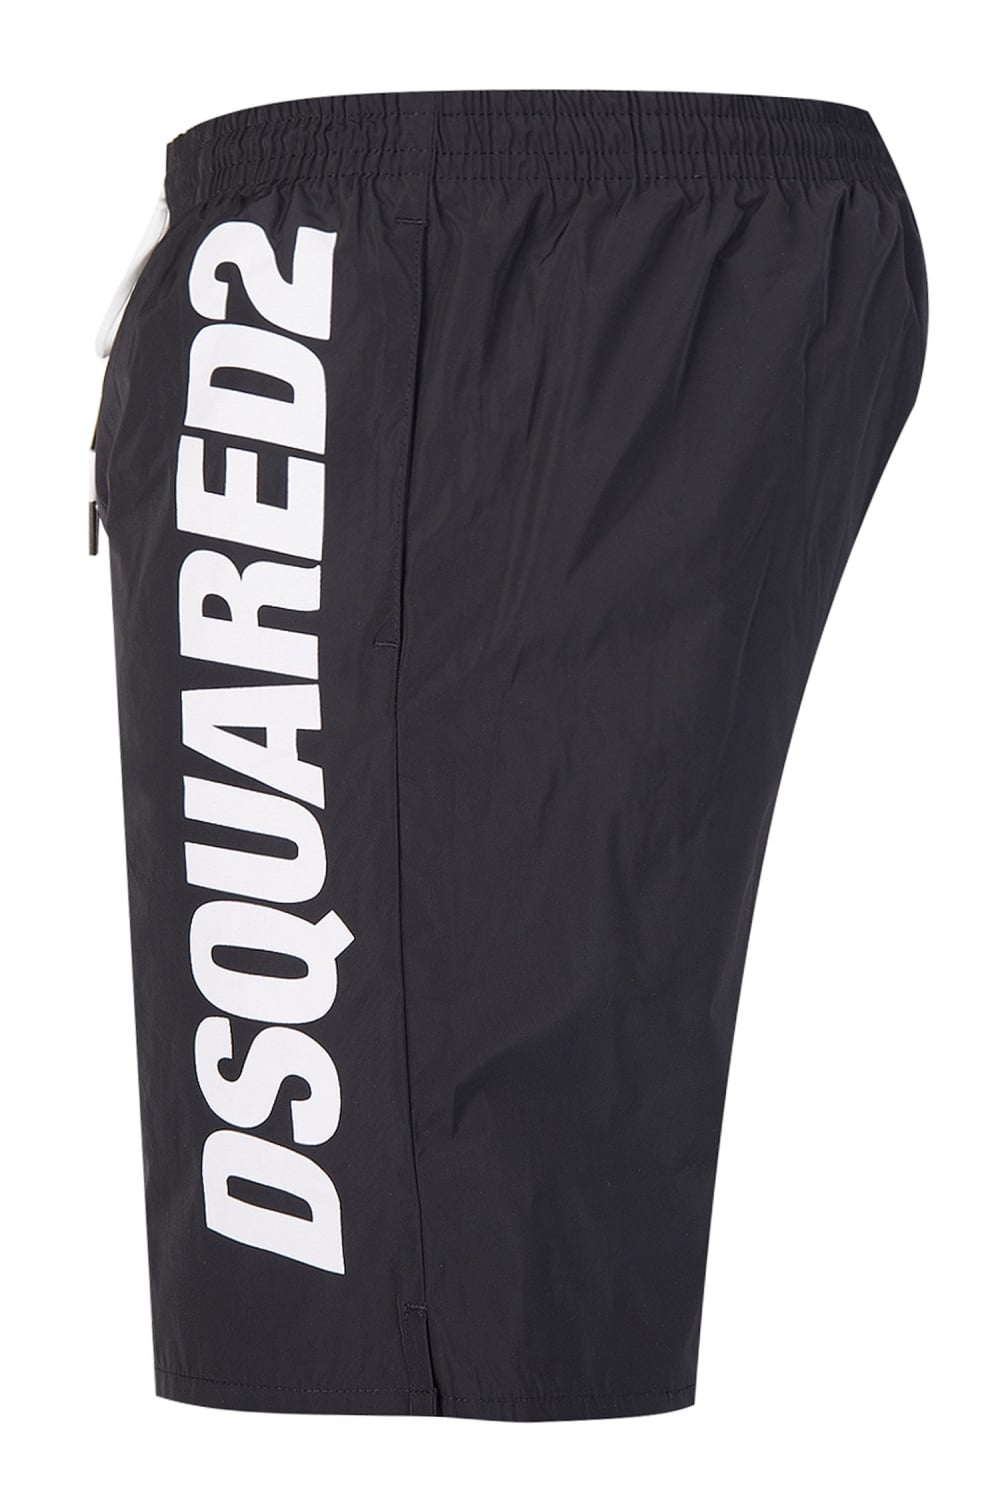 buying now excellent quality shades of Dsquared Logo Swim Shorts Black